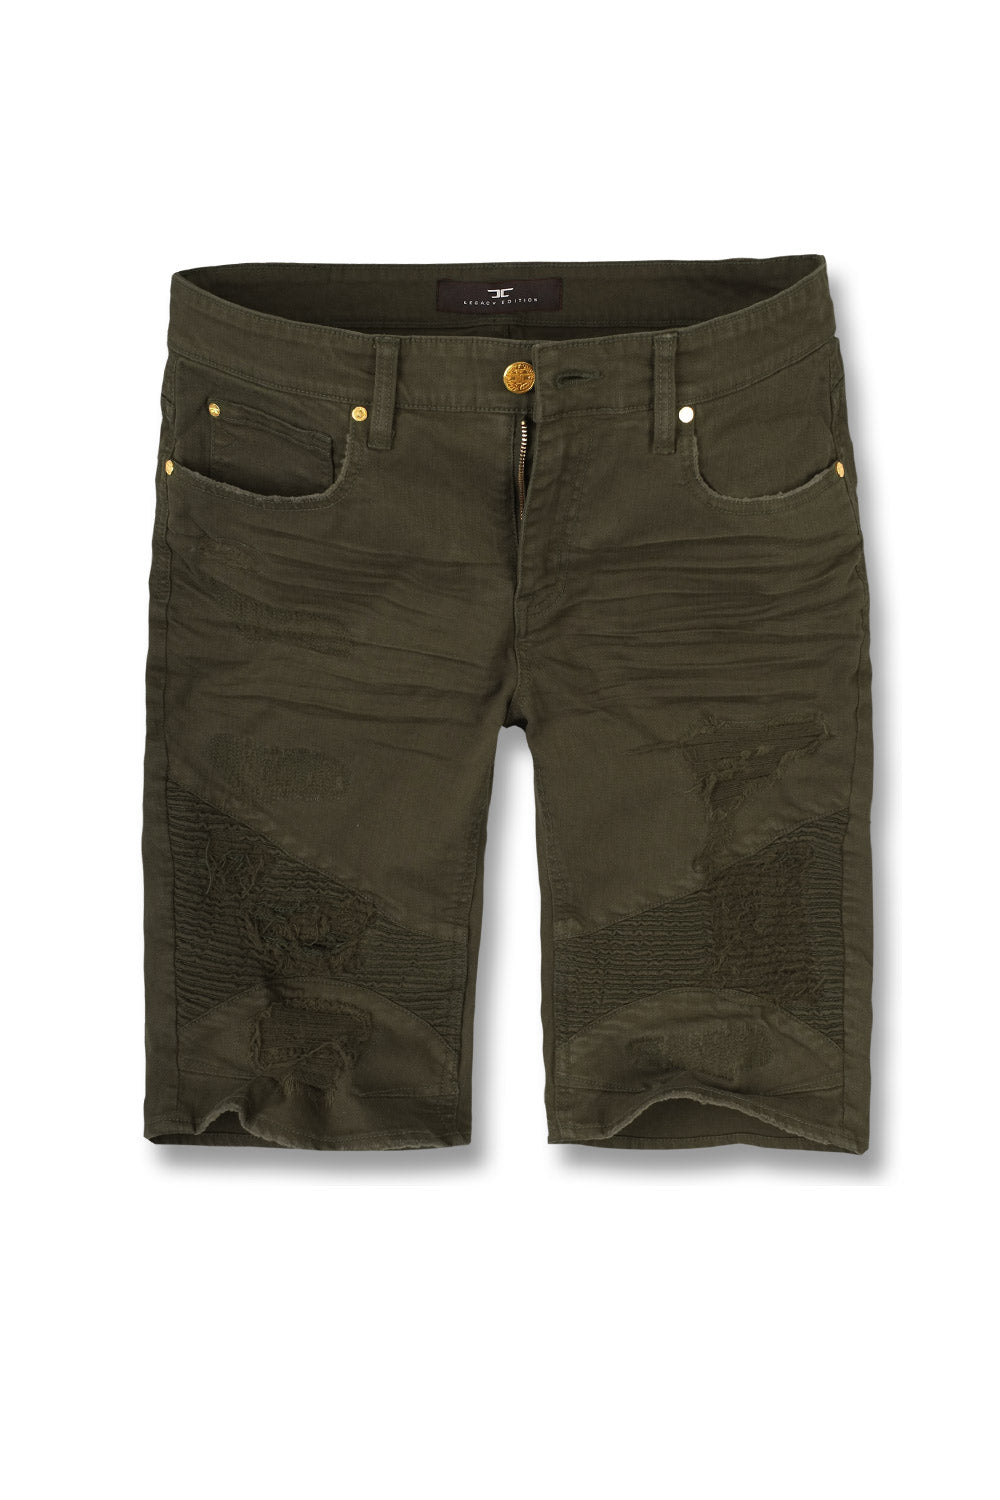 Jordan Craig - Savior Biker Shorts (Army Green)